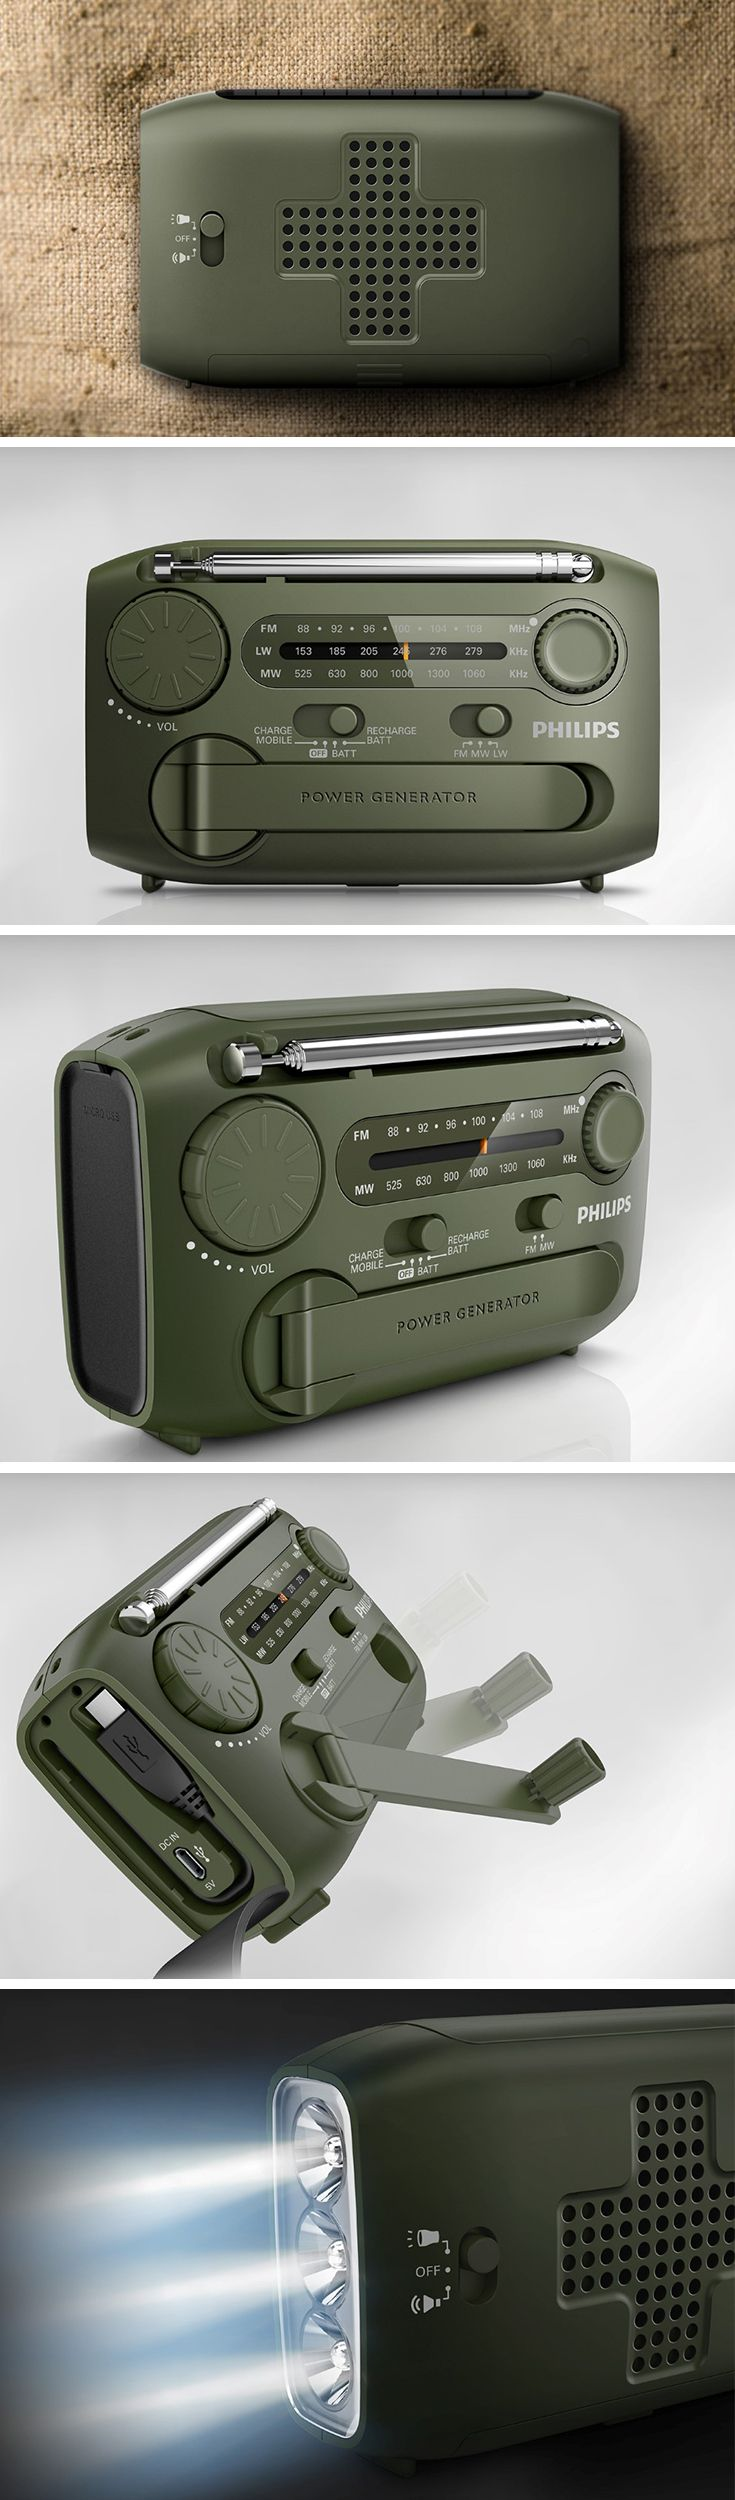 Designed to be everything your phone is not, this little olive green gadget can prove more than handy when you find yourself between a rock and a hard place. Designed with an FM, LW, and MW radio, a torch, an emergency siren, and a power bank to charge your smart devices, the Portable Survival Radio is literally a life-saver.